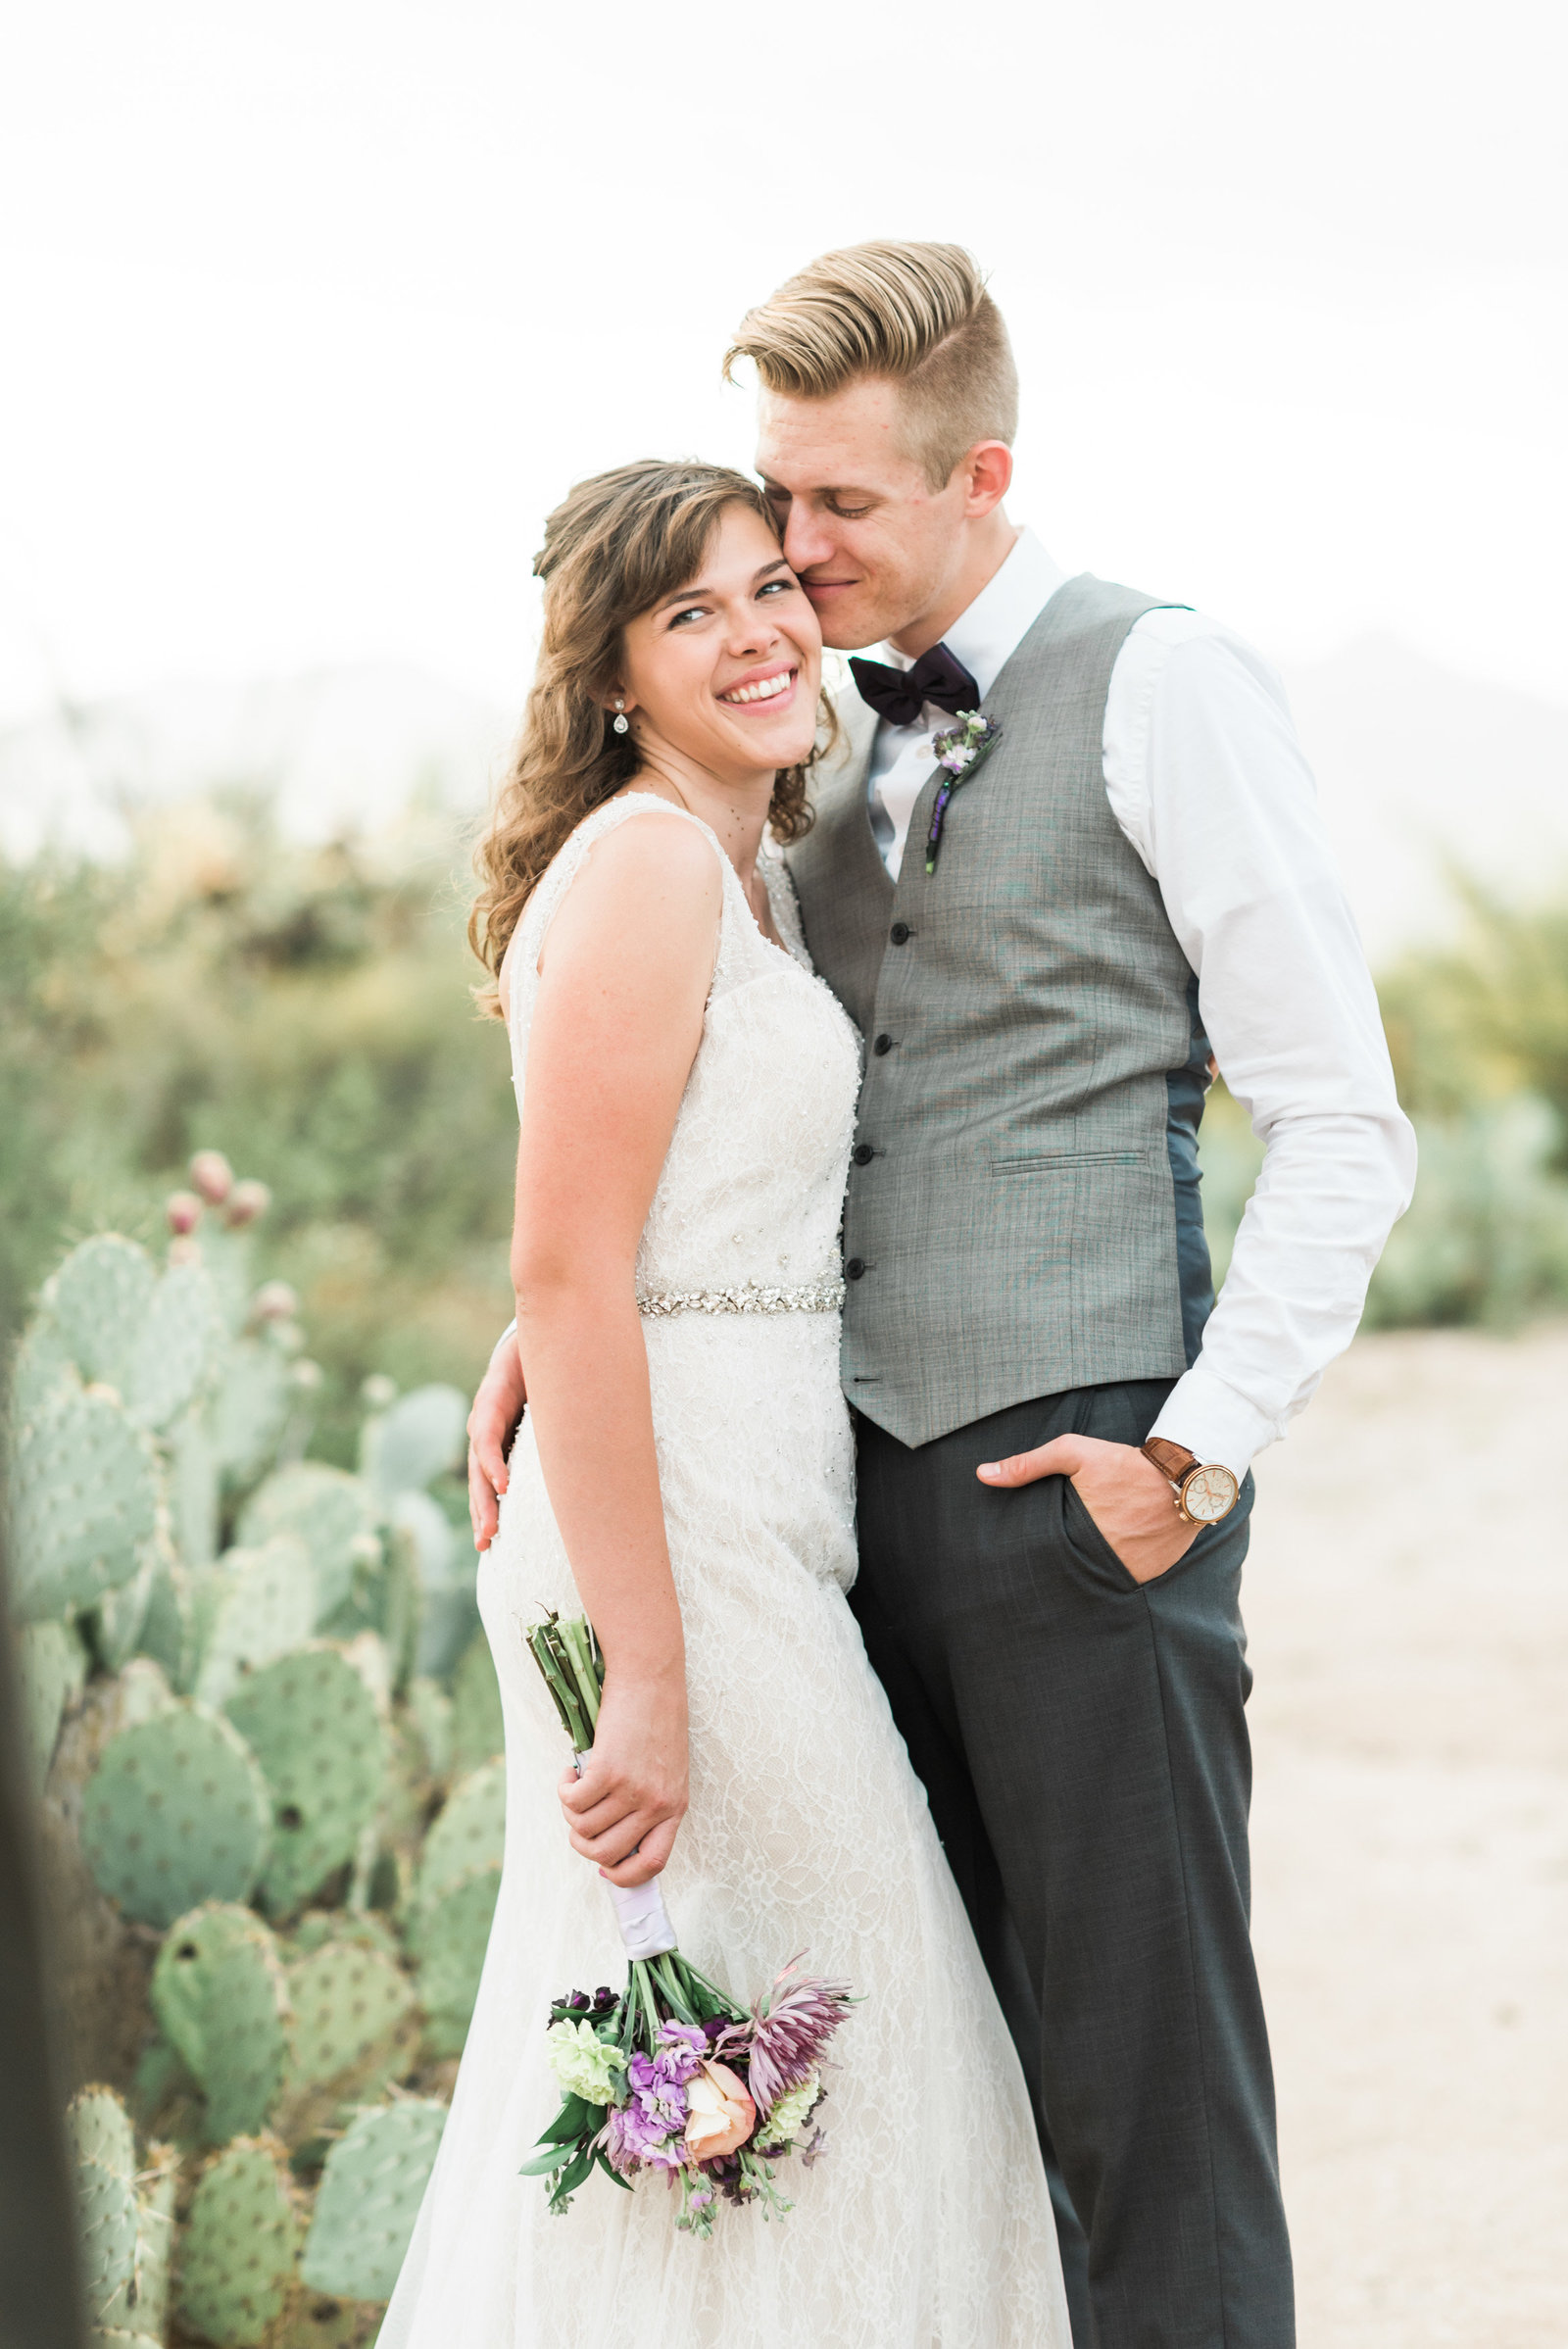 Tucson Sanctuary Cove Desert Wedding Photo of Bride and Groom | Tucson Wedding Photographer | West End Photography